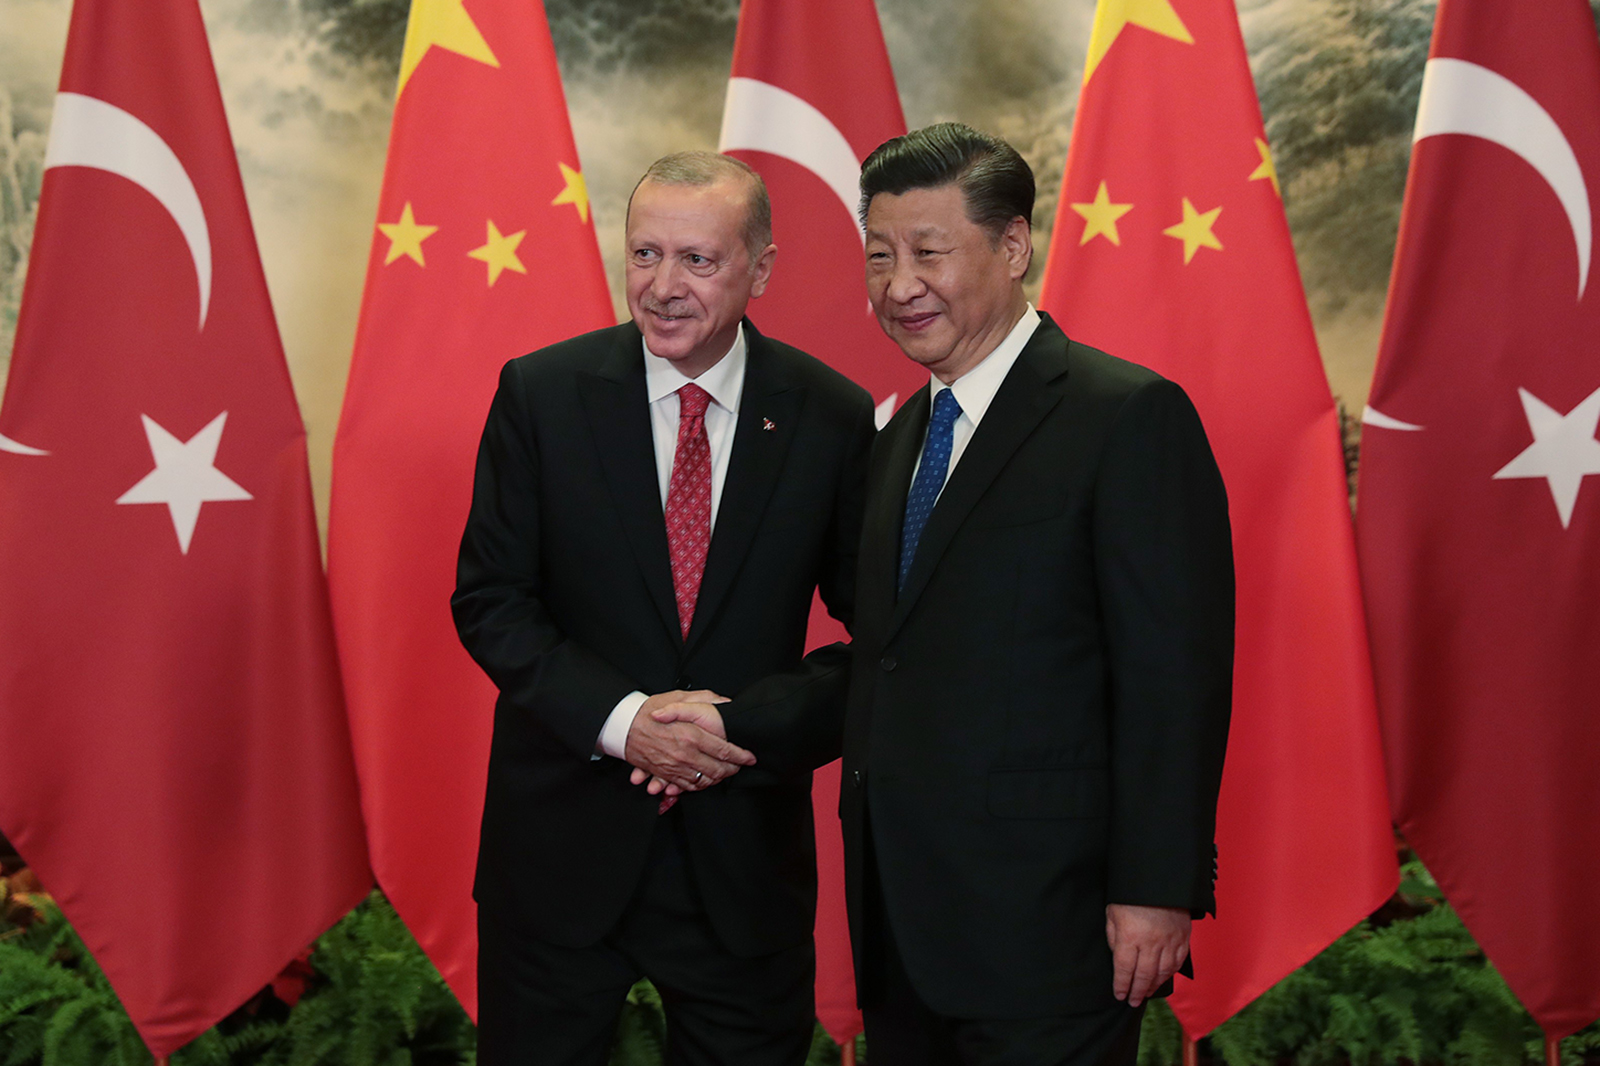 Turkish President Recep Tayyip Erdogan and Chinese President Xi Jinping shake hands after an official welcoming ceremony in Beijing on July 2.